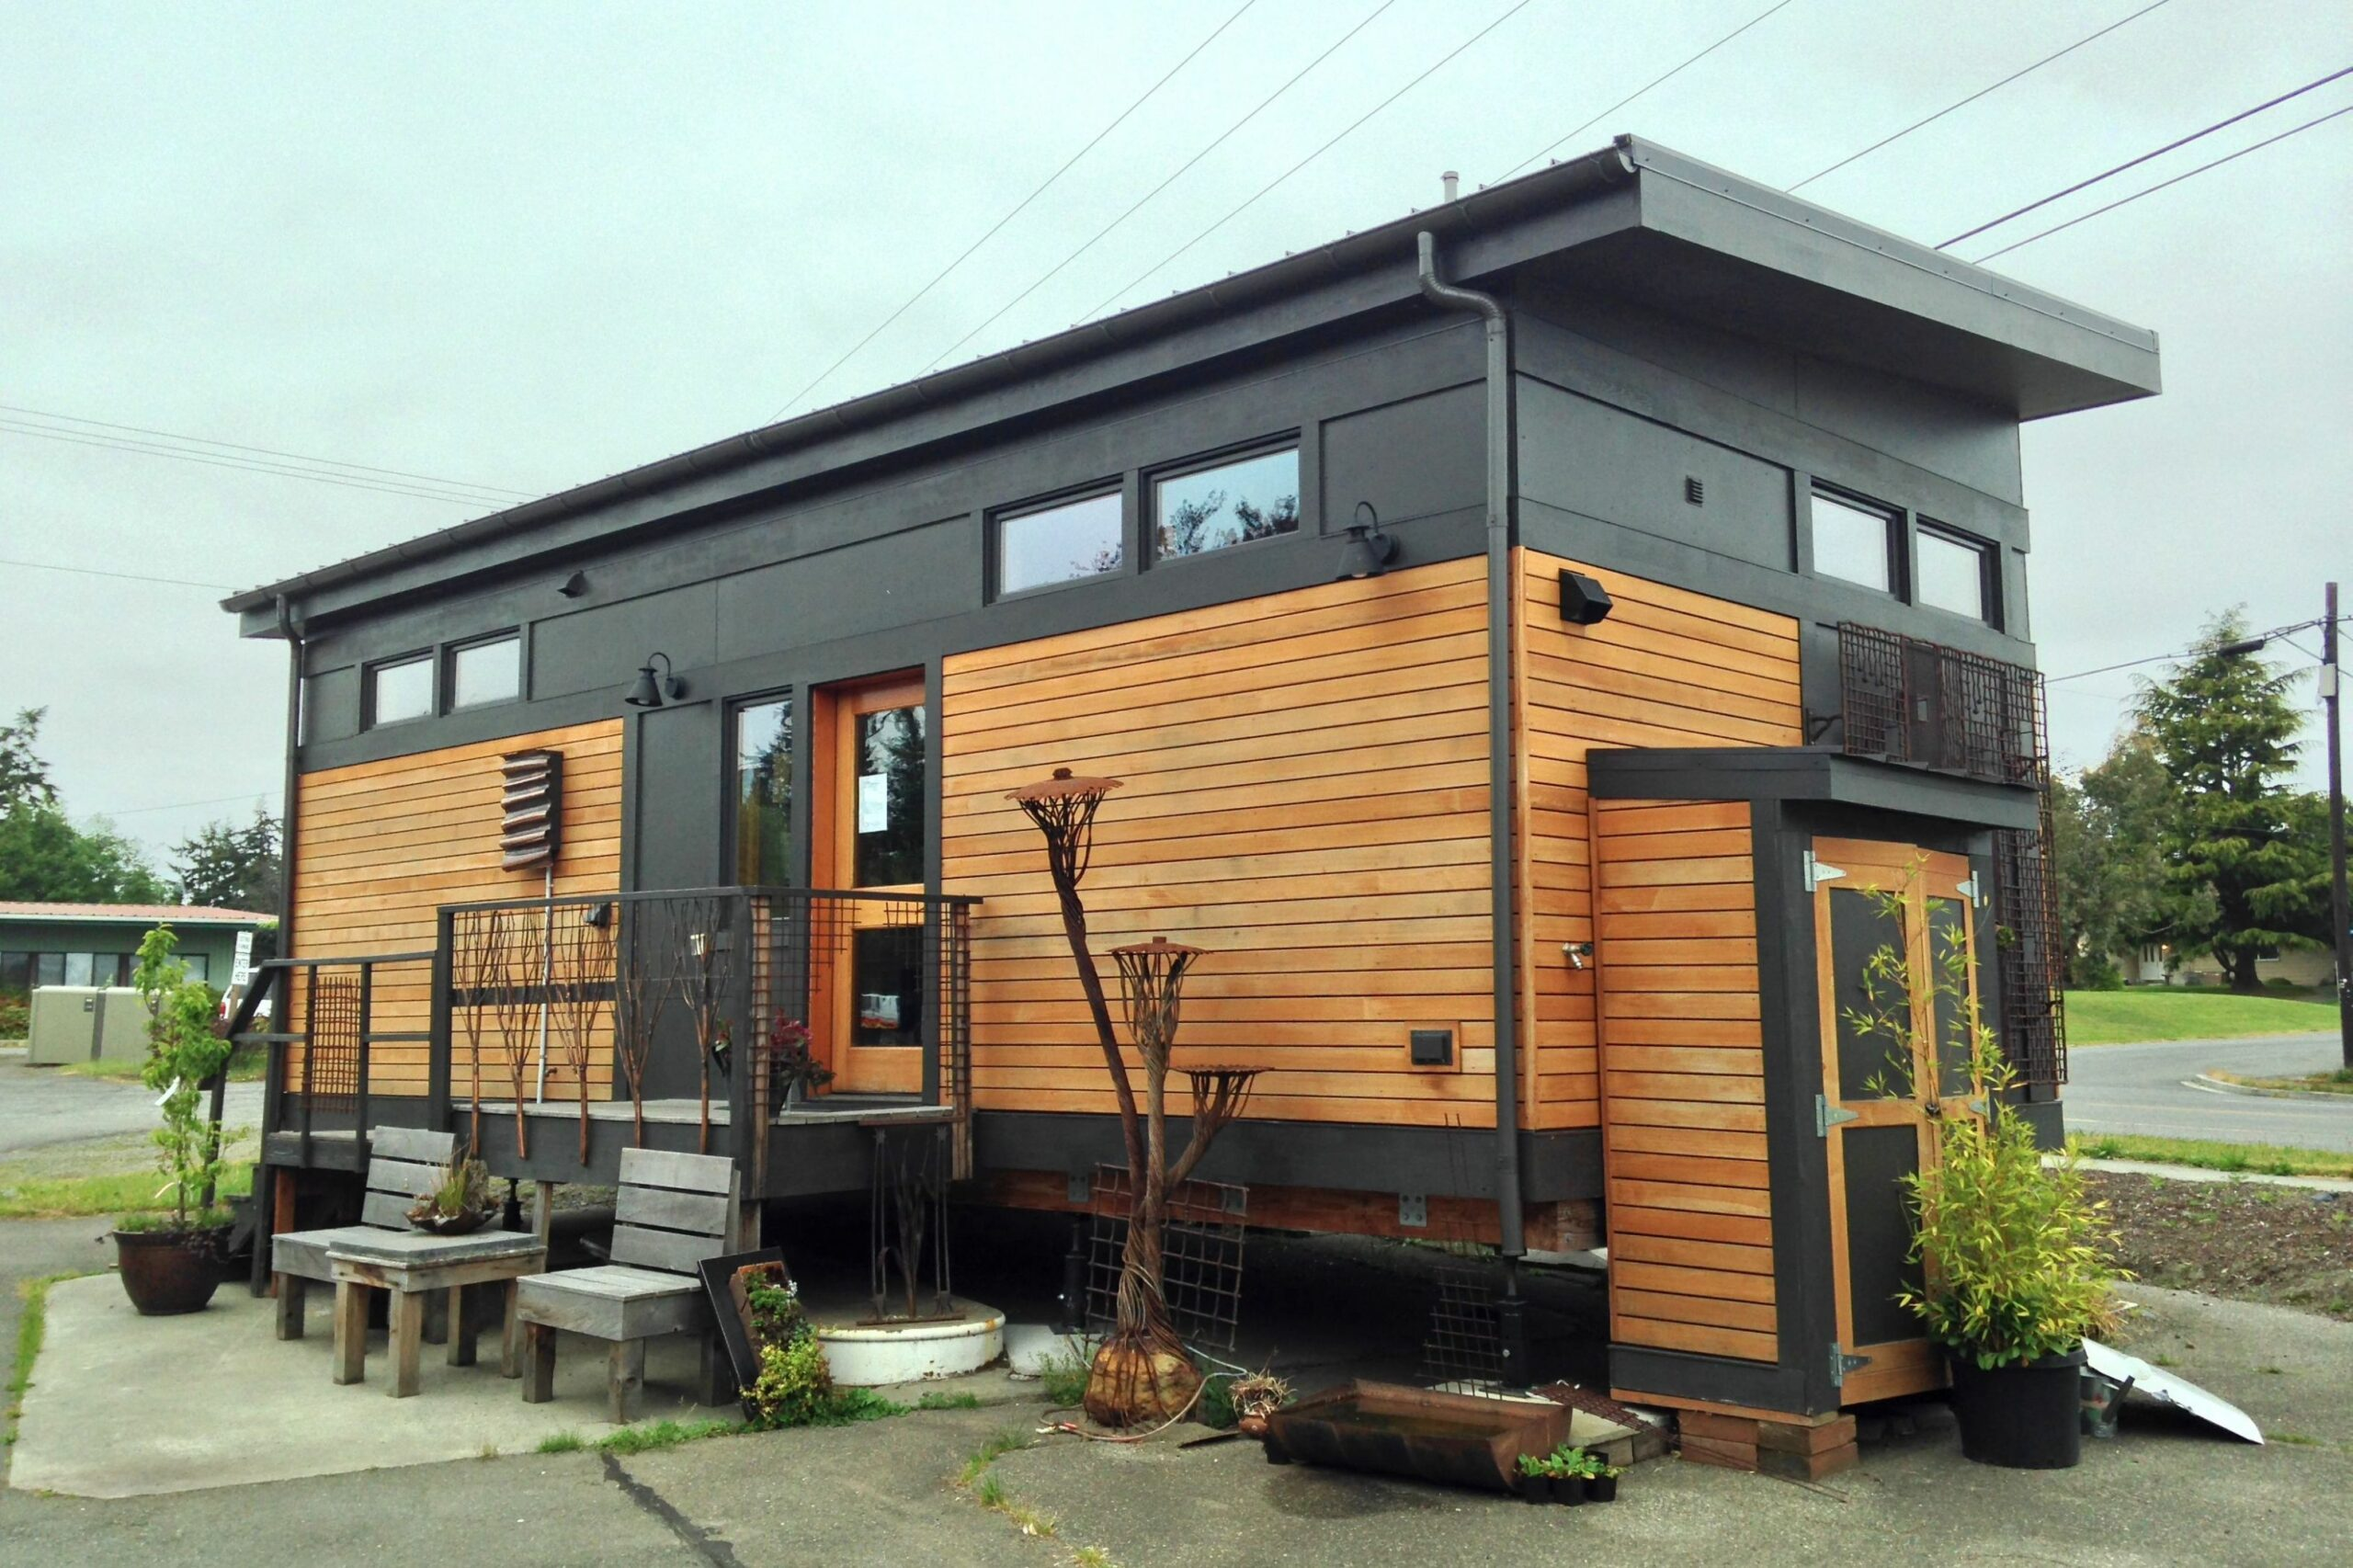 10 Livable Tiny House Communities - tiny house real estate